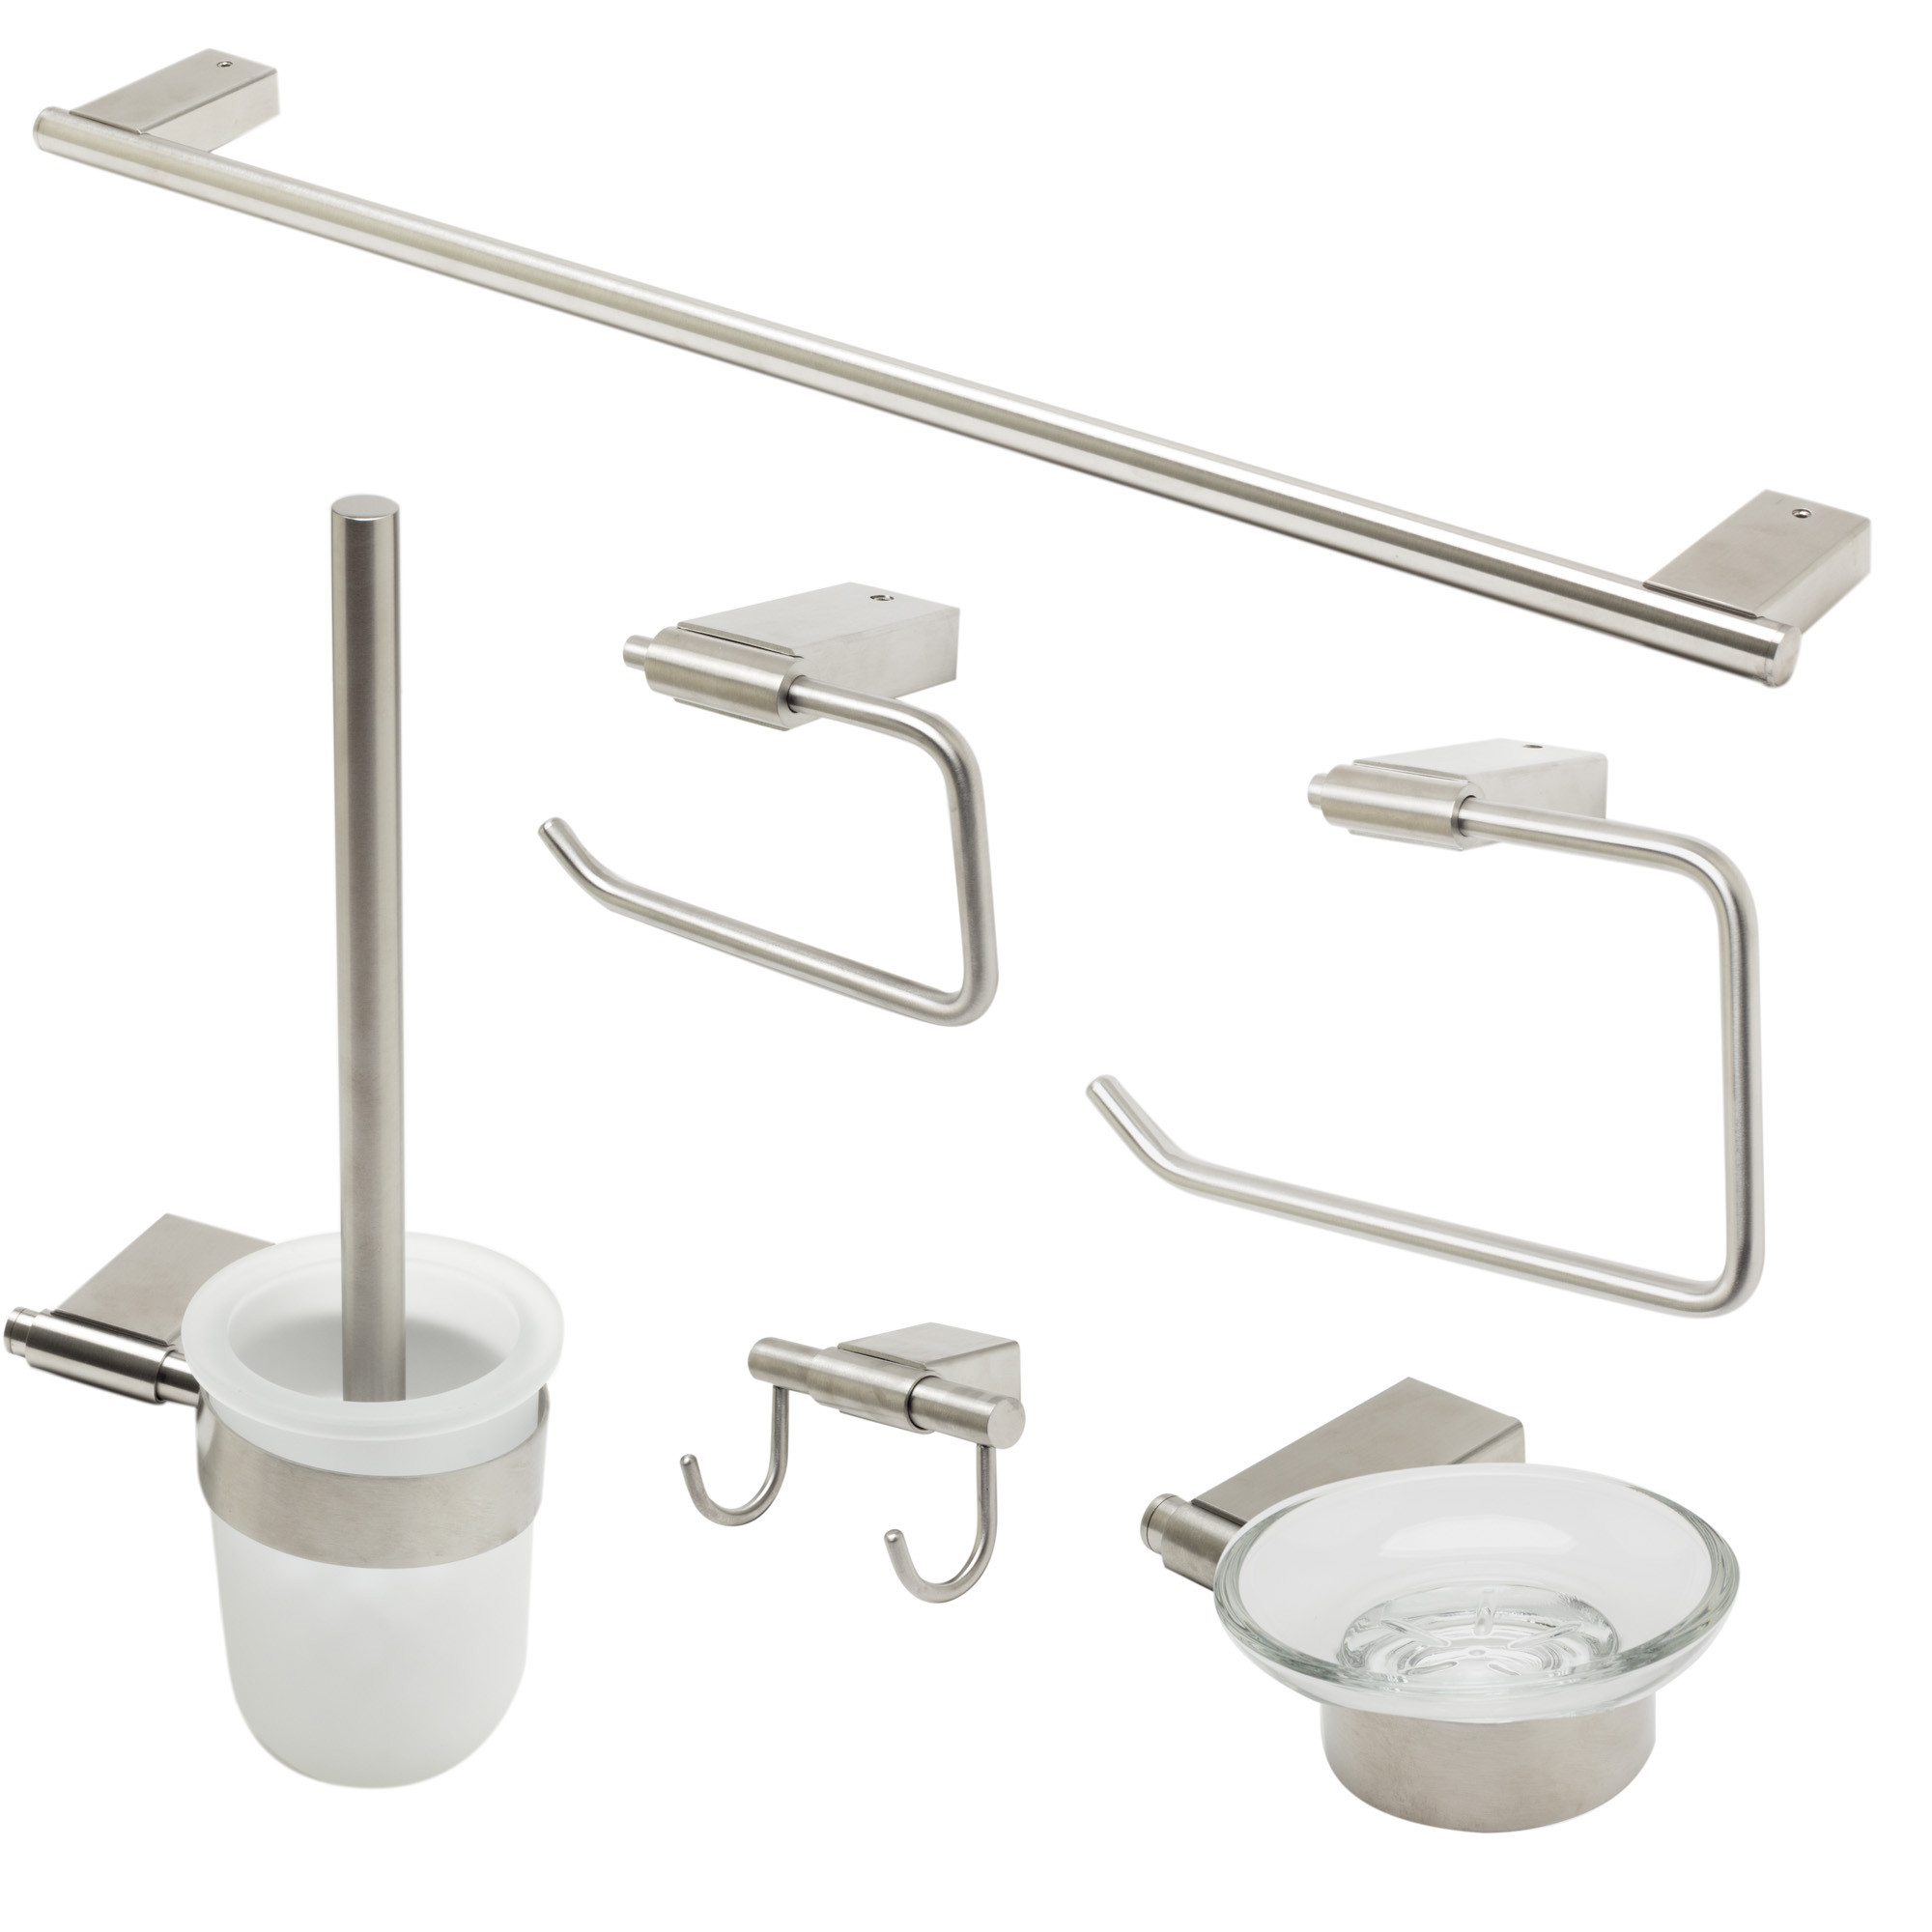 ALFI brand AB9515-BN Brushed Nickel 6 Piece Matching Bathroom Accessory Set